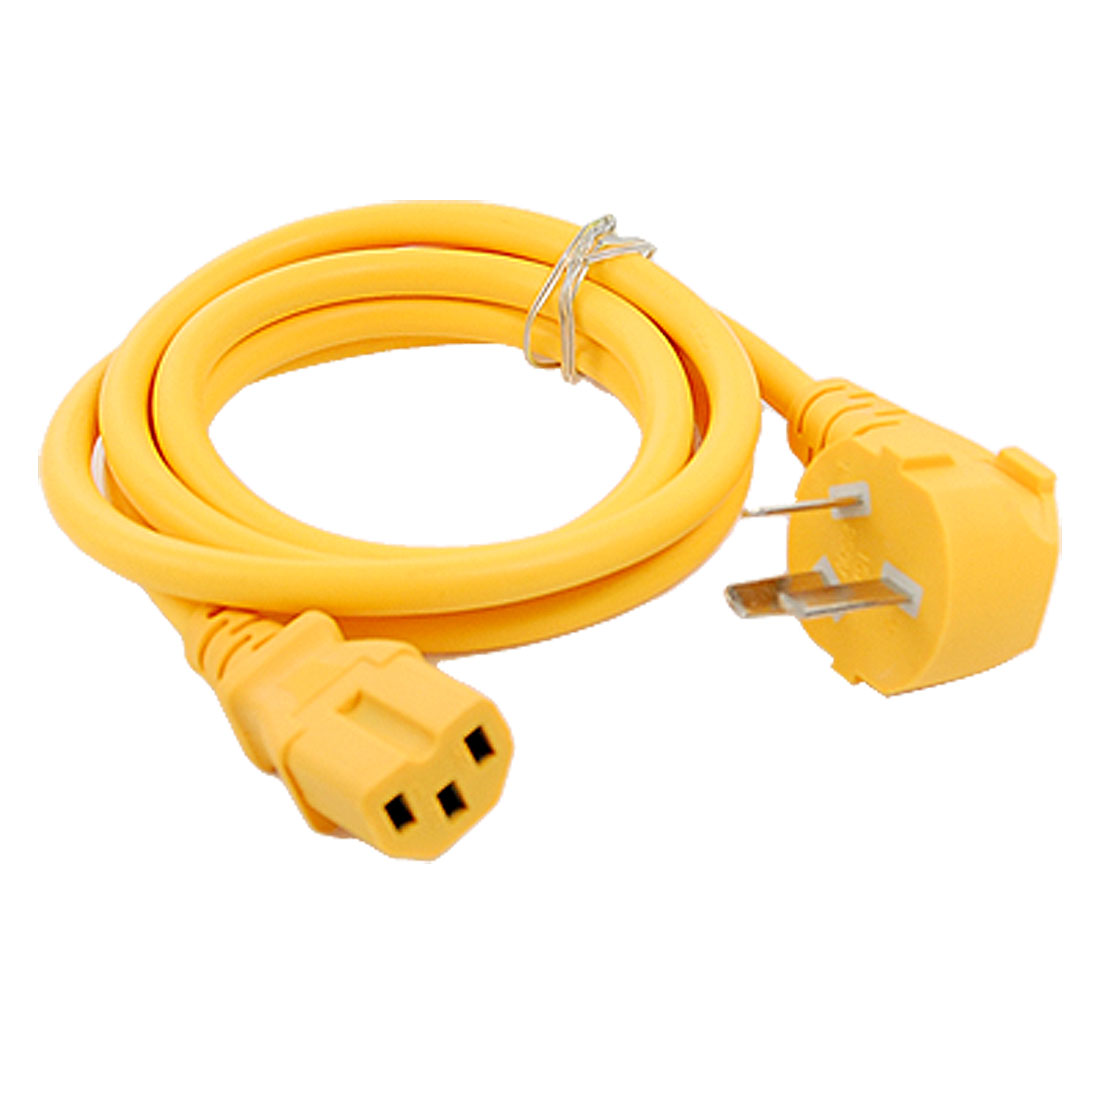 AU 3 Pin Plug AC 250V 16A Computer Electric Cooker Power Cable Yellow